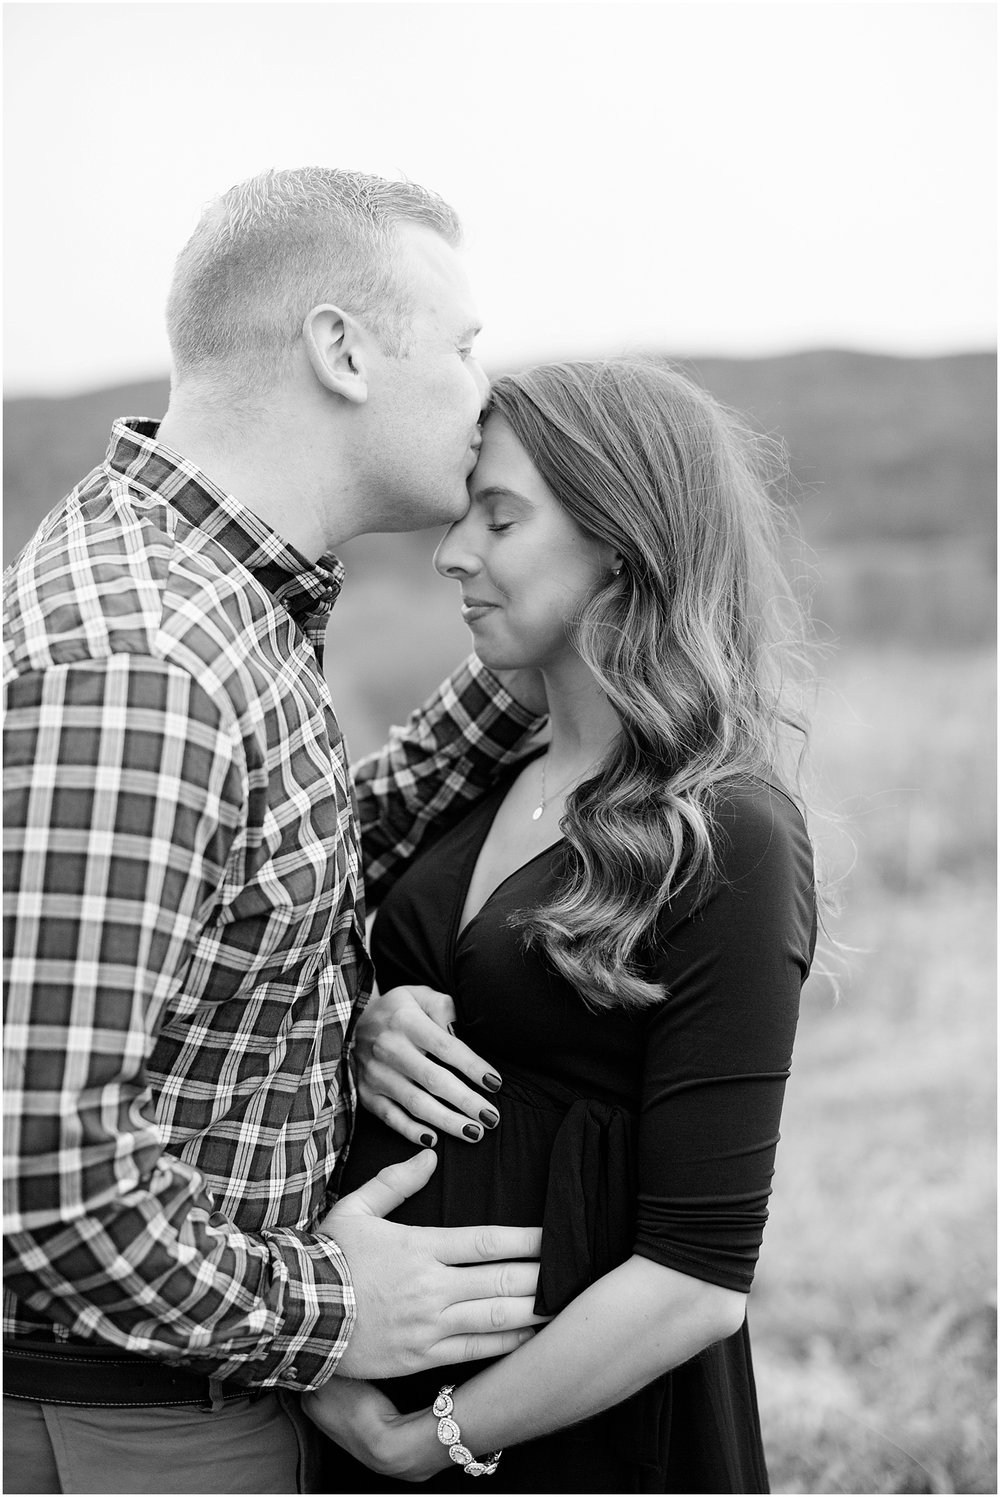 Ashley Powell Photography Hannah Fallion Maternity Blog Images_0045.jpg